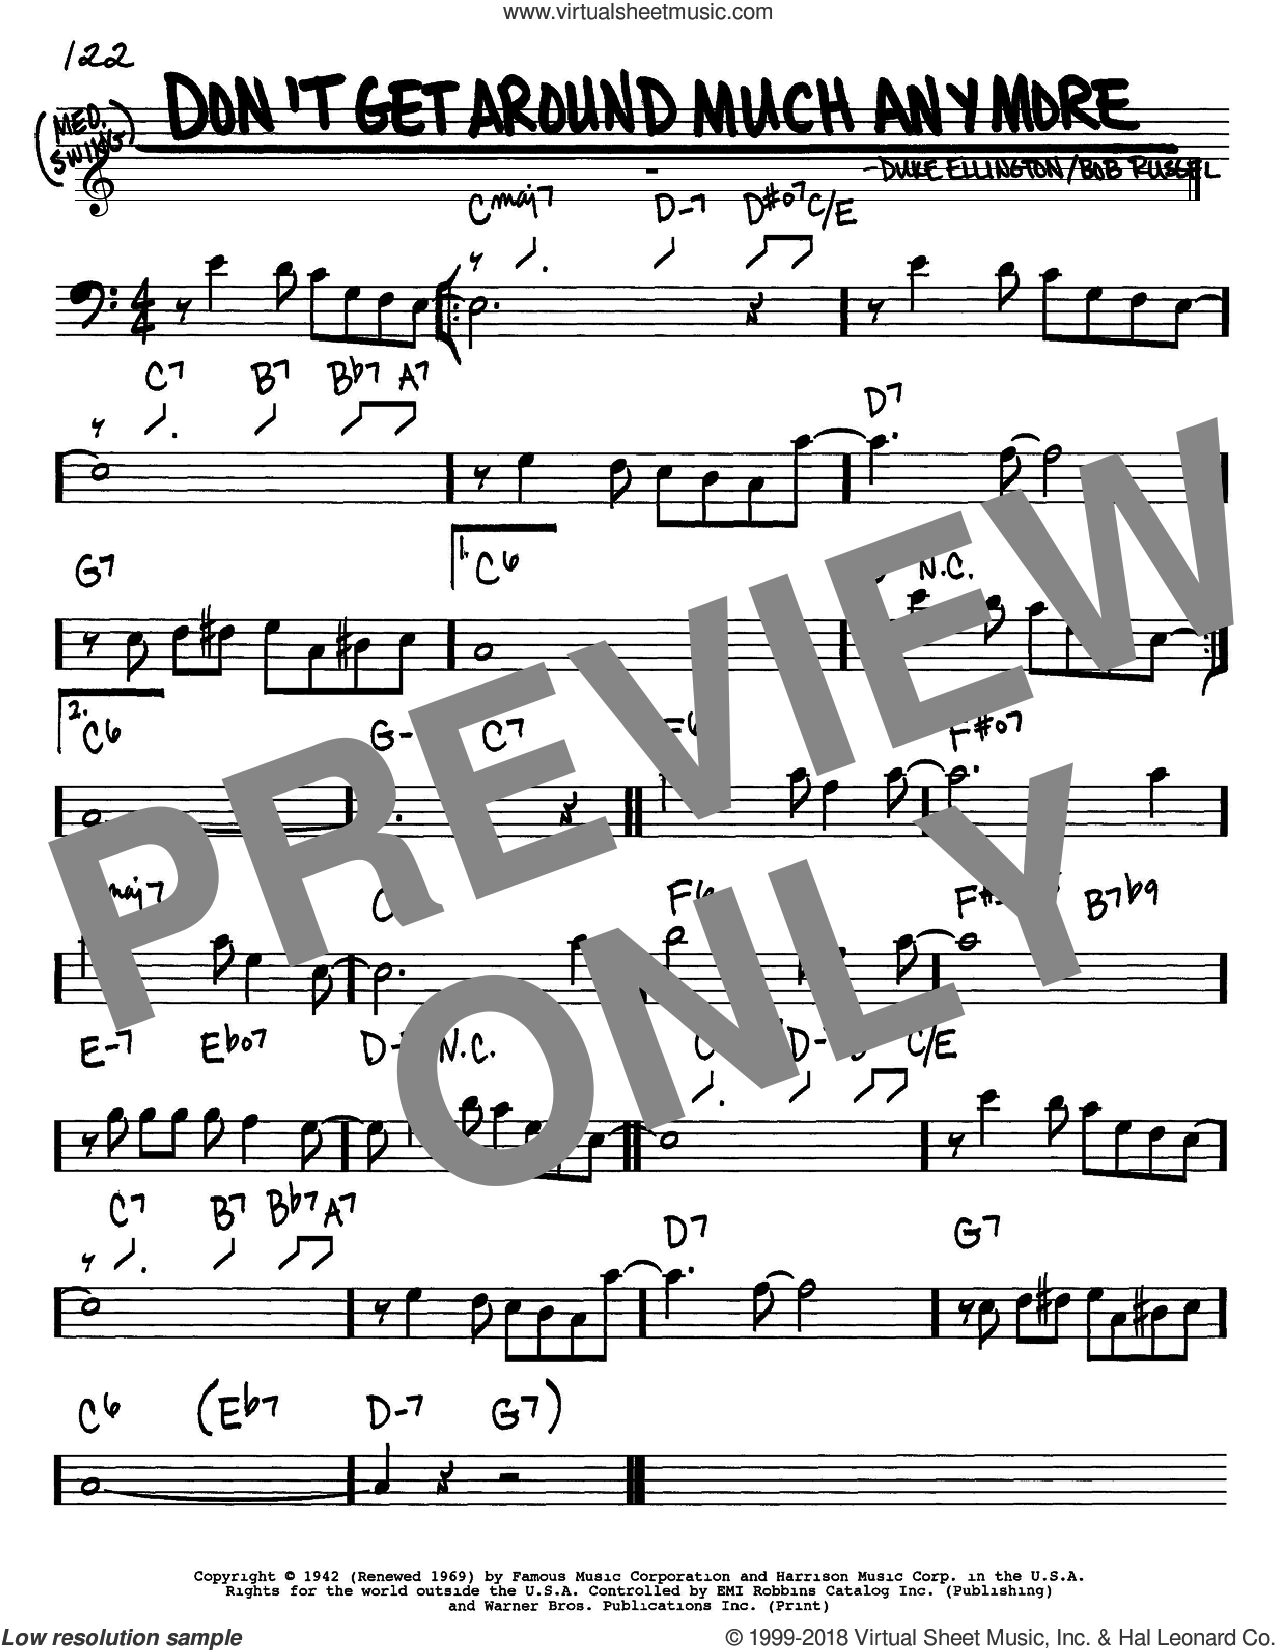 Don't Get Around Much Anymore sheet music for voice and other instruments (Bass Clef ) by Duke Ellington and Bob Russell, intermediate. Score Image Preview.